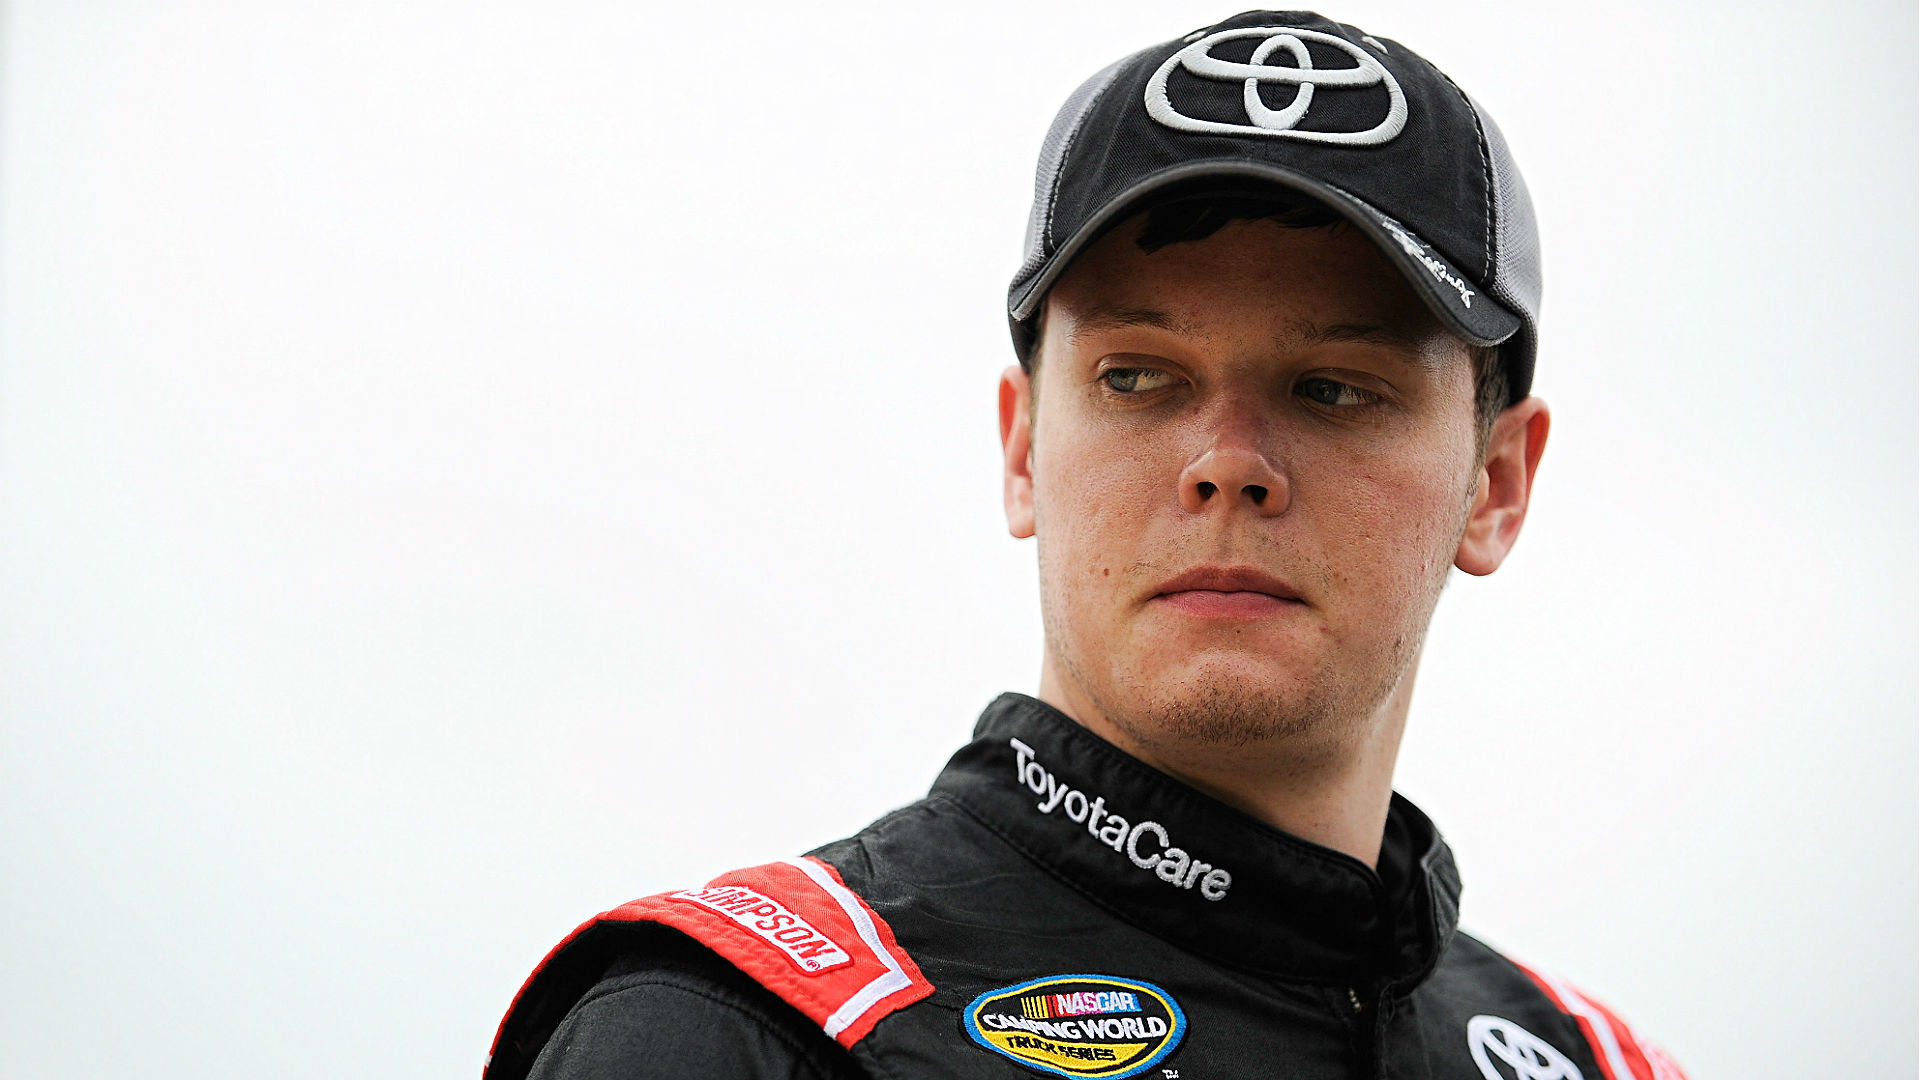 NASCAR odds and driver ratings – Erik Jones one to watch in debut at Kansas